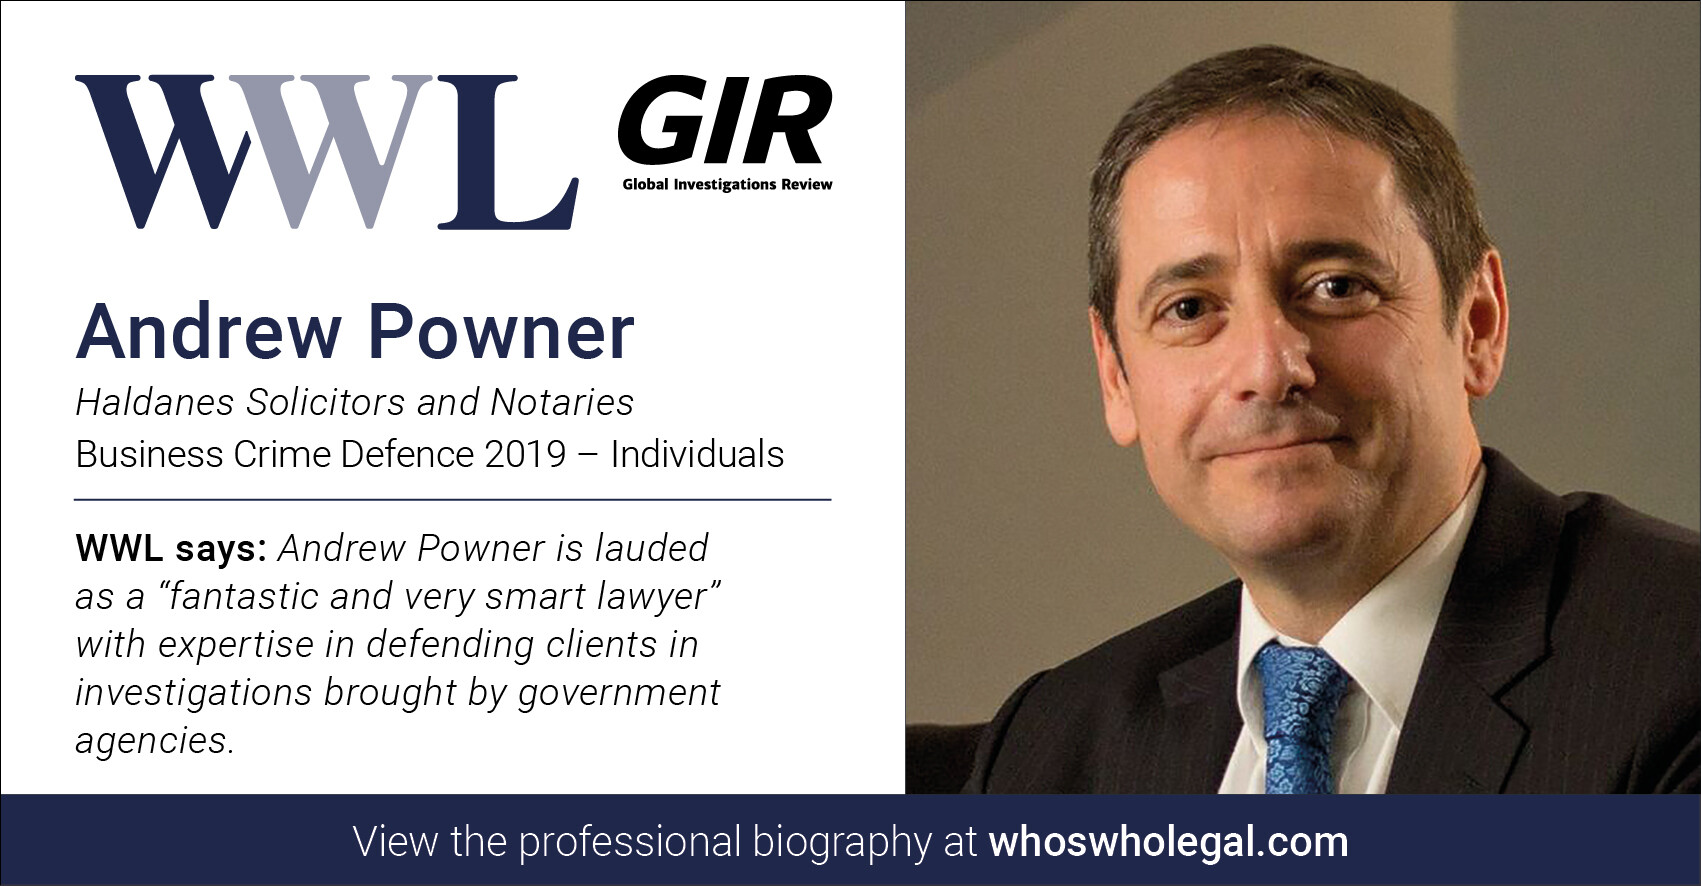 Andrew Powner WWL 2019 1 - Haldanes recognised in Who's Who Legal Business Crime Defence 2019